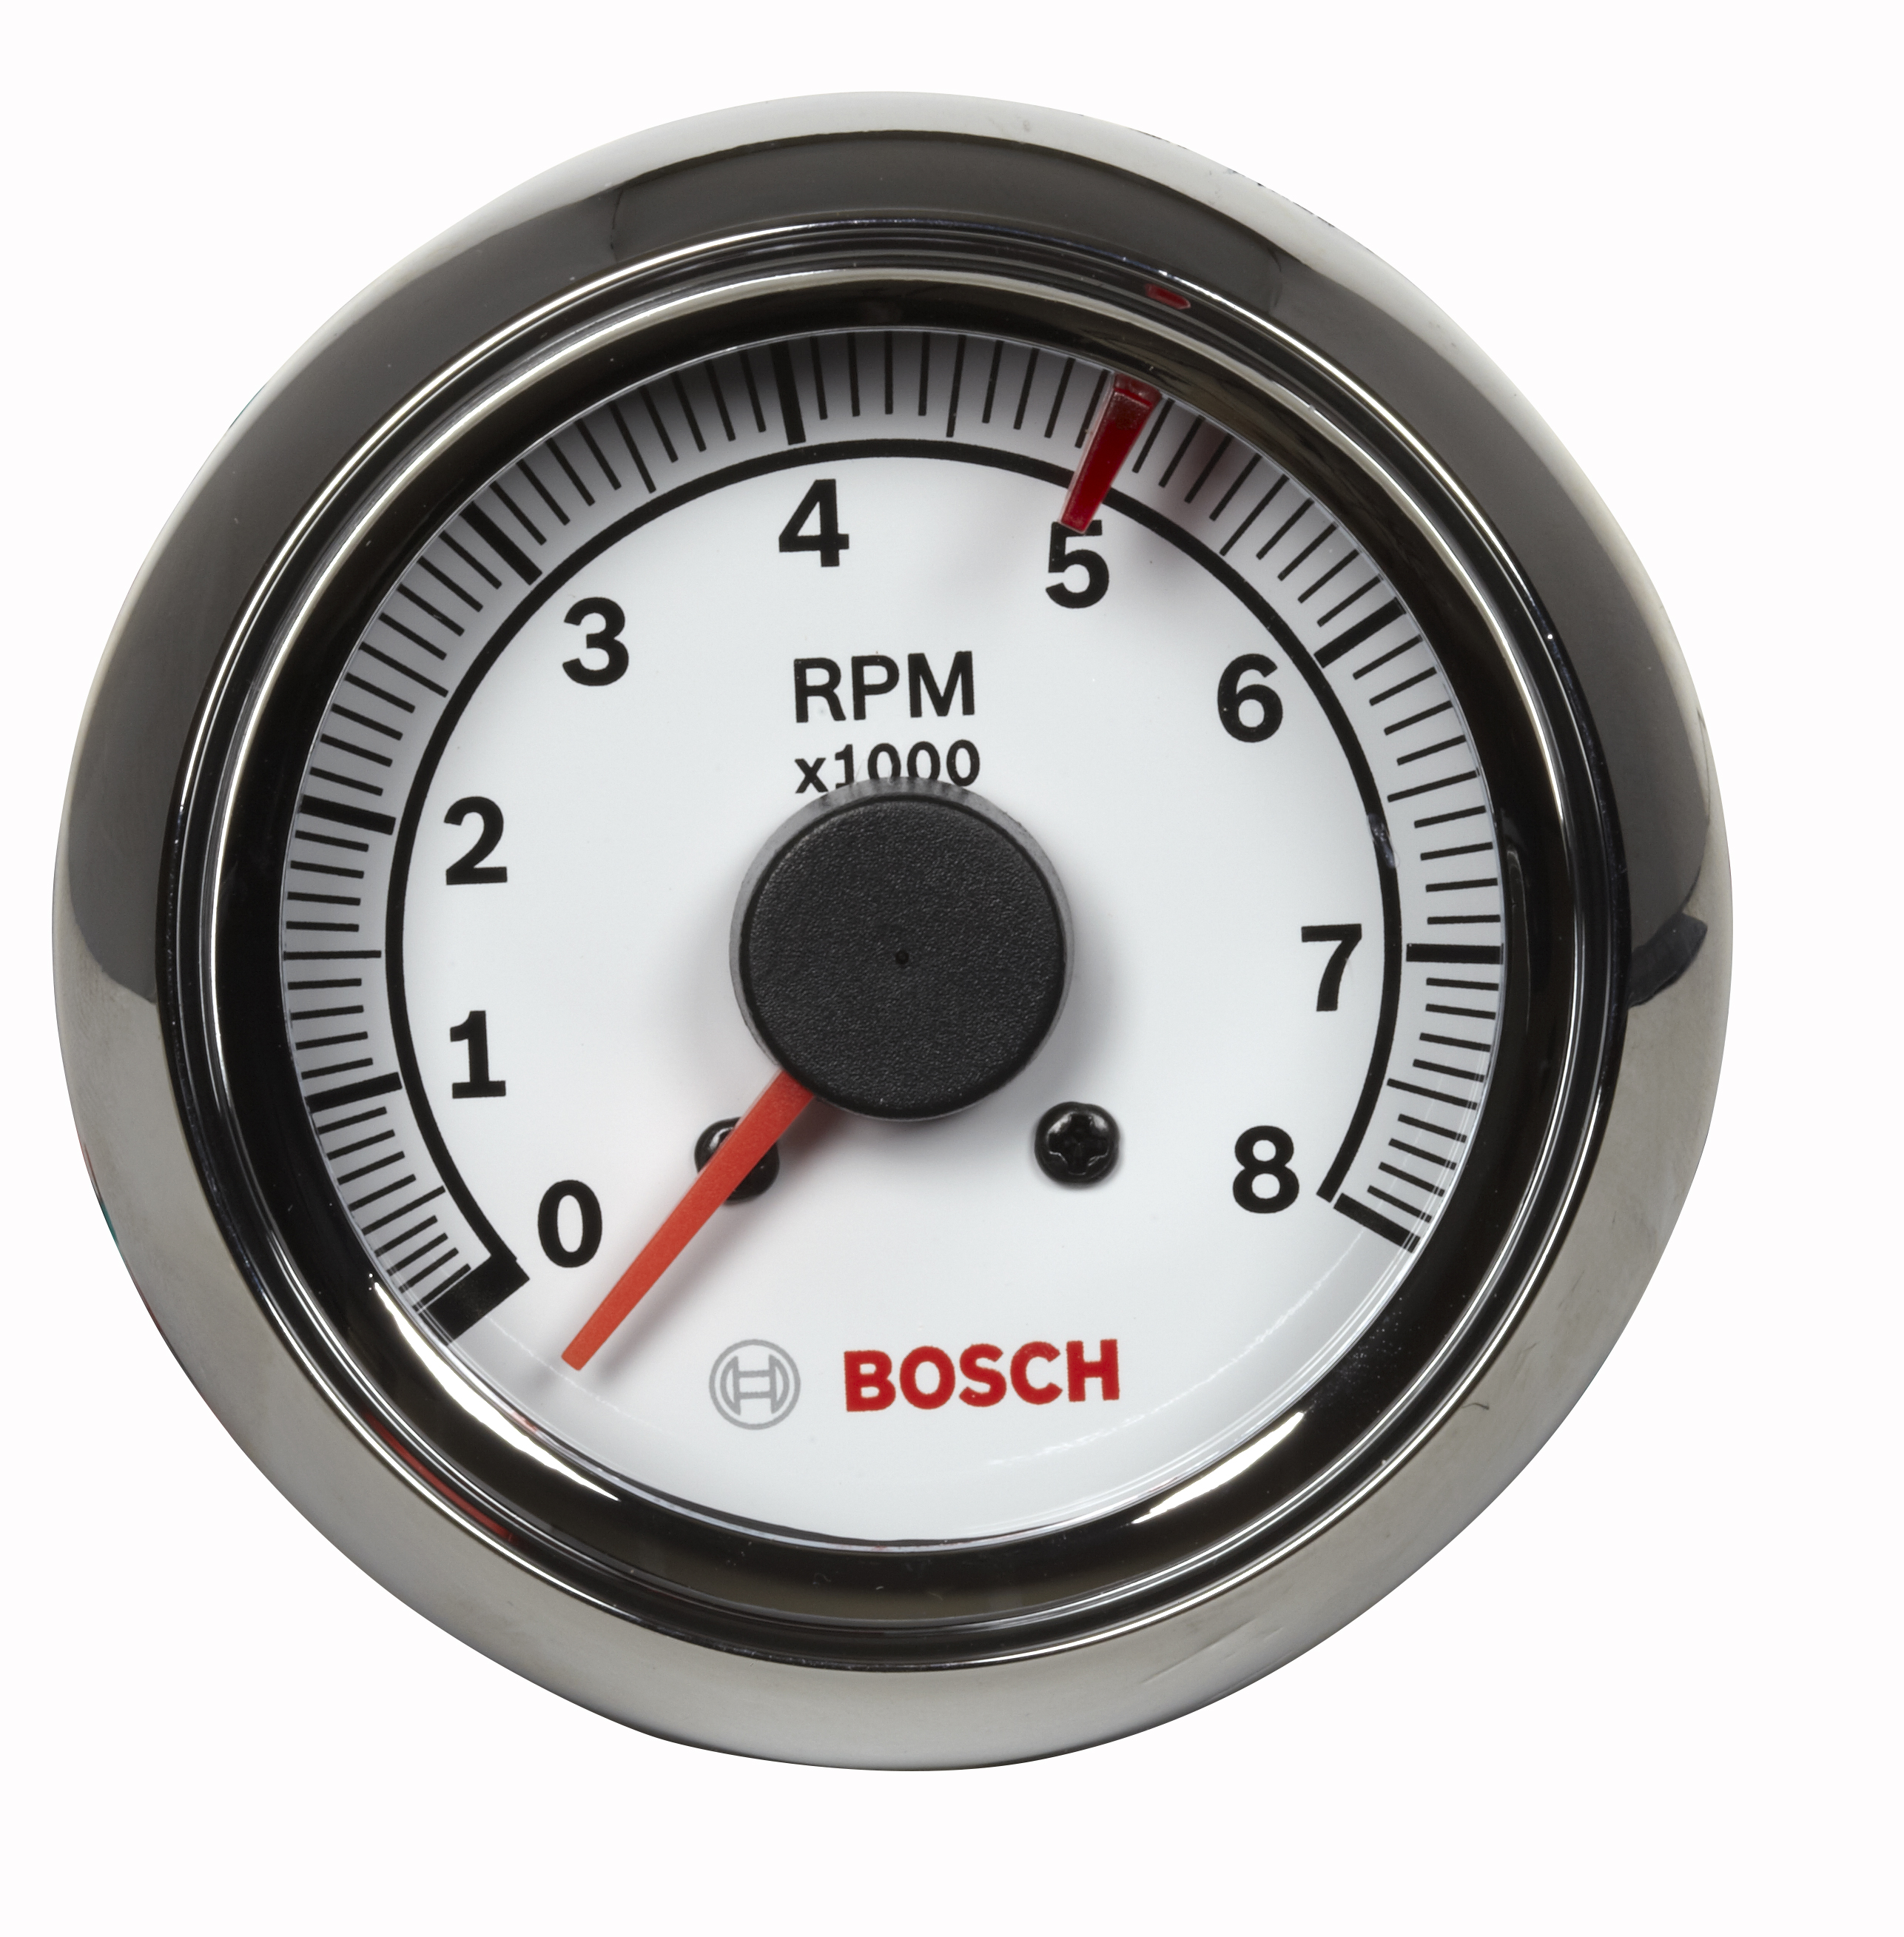 Bosch Tachometer Wiring Library Sun Pro Tach Https Otctoolscom Sites Default Files